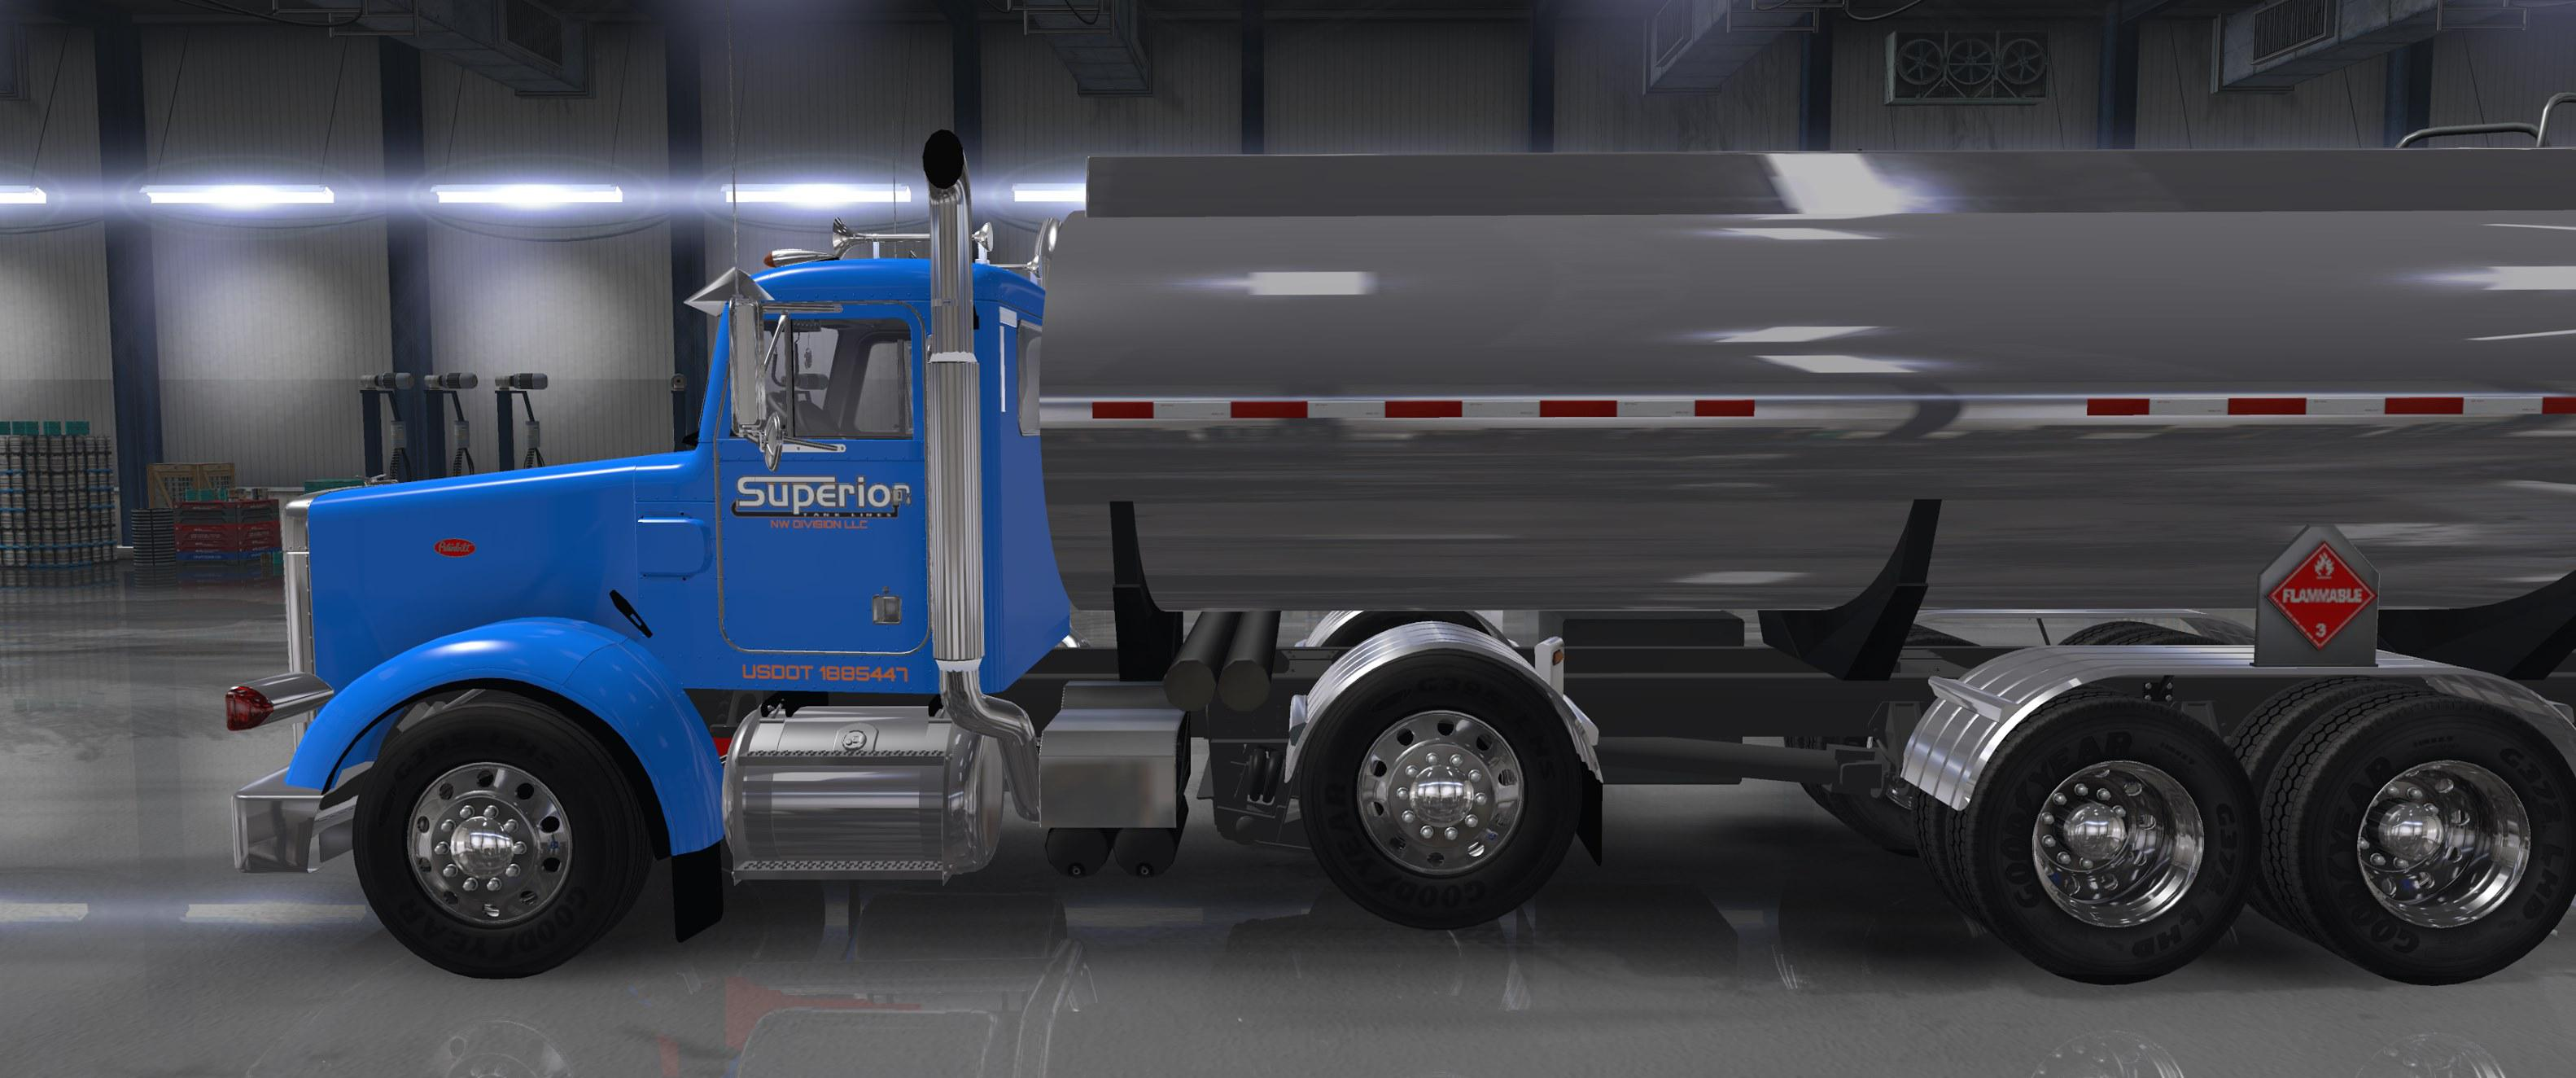 ATS - Heavy Truck And Trailer Add-On for Hfg Project 3xx (1.36.x)